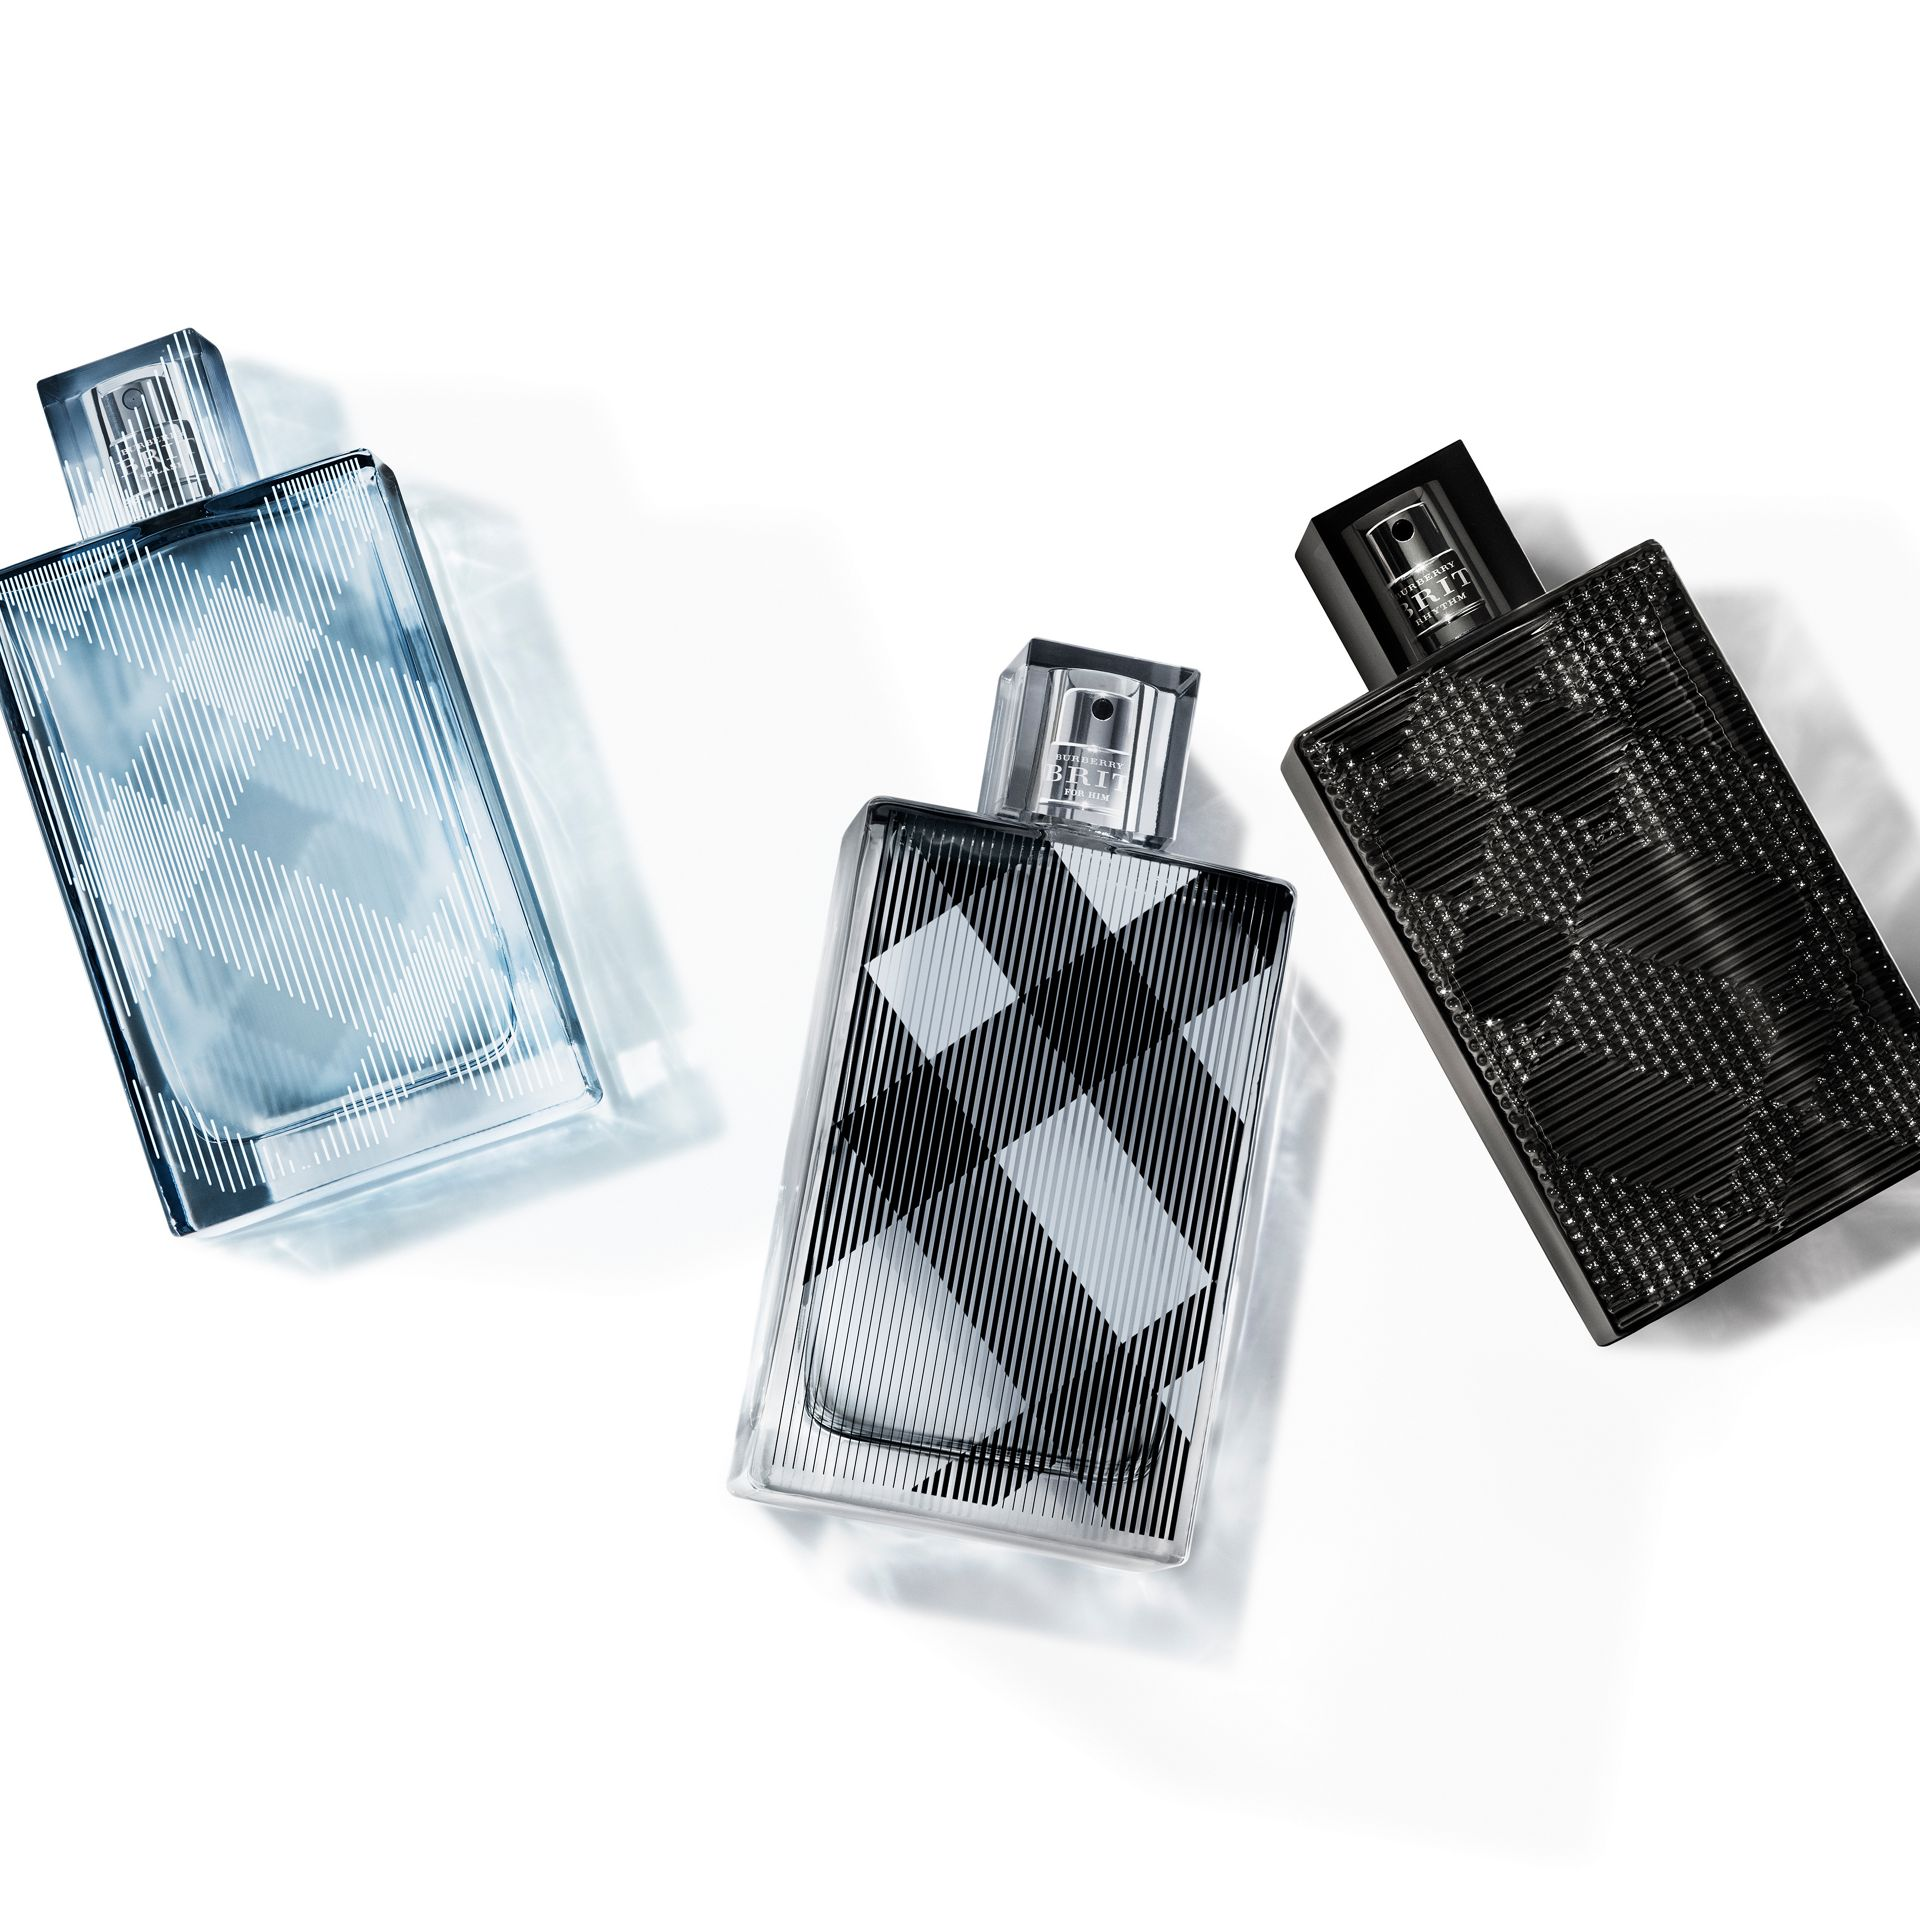 Burberry Brit Splash Eau de Toilette 50 ml - Uomo | Burberry - immagine della galleria 3